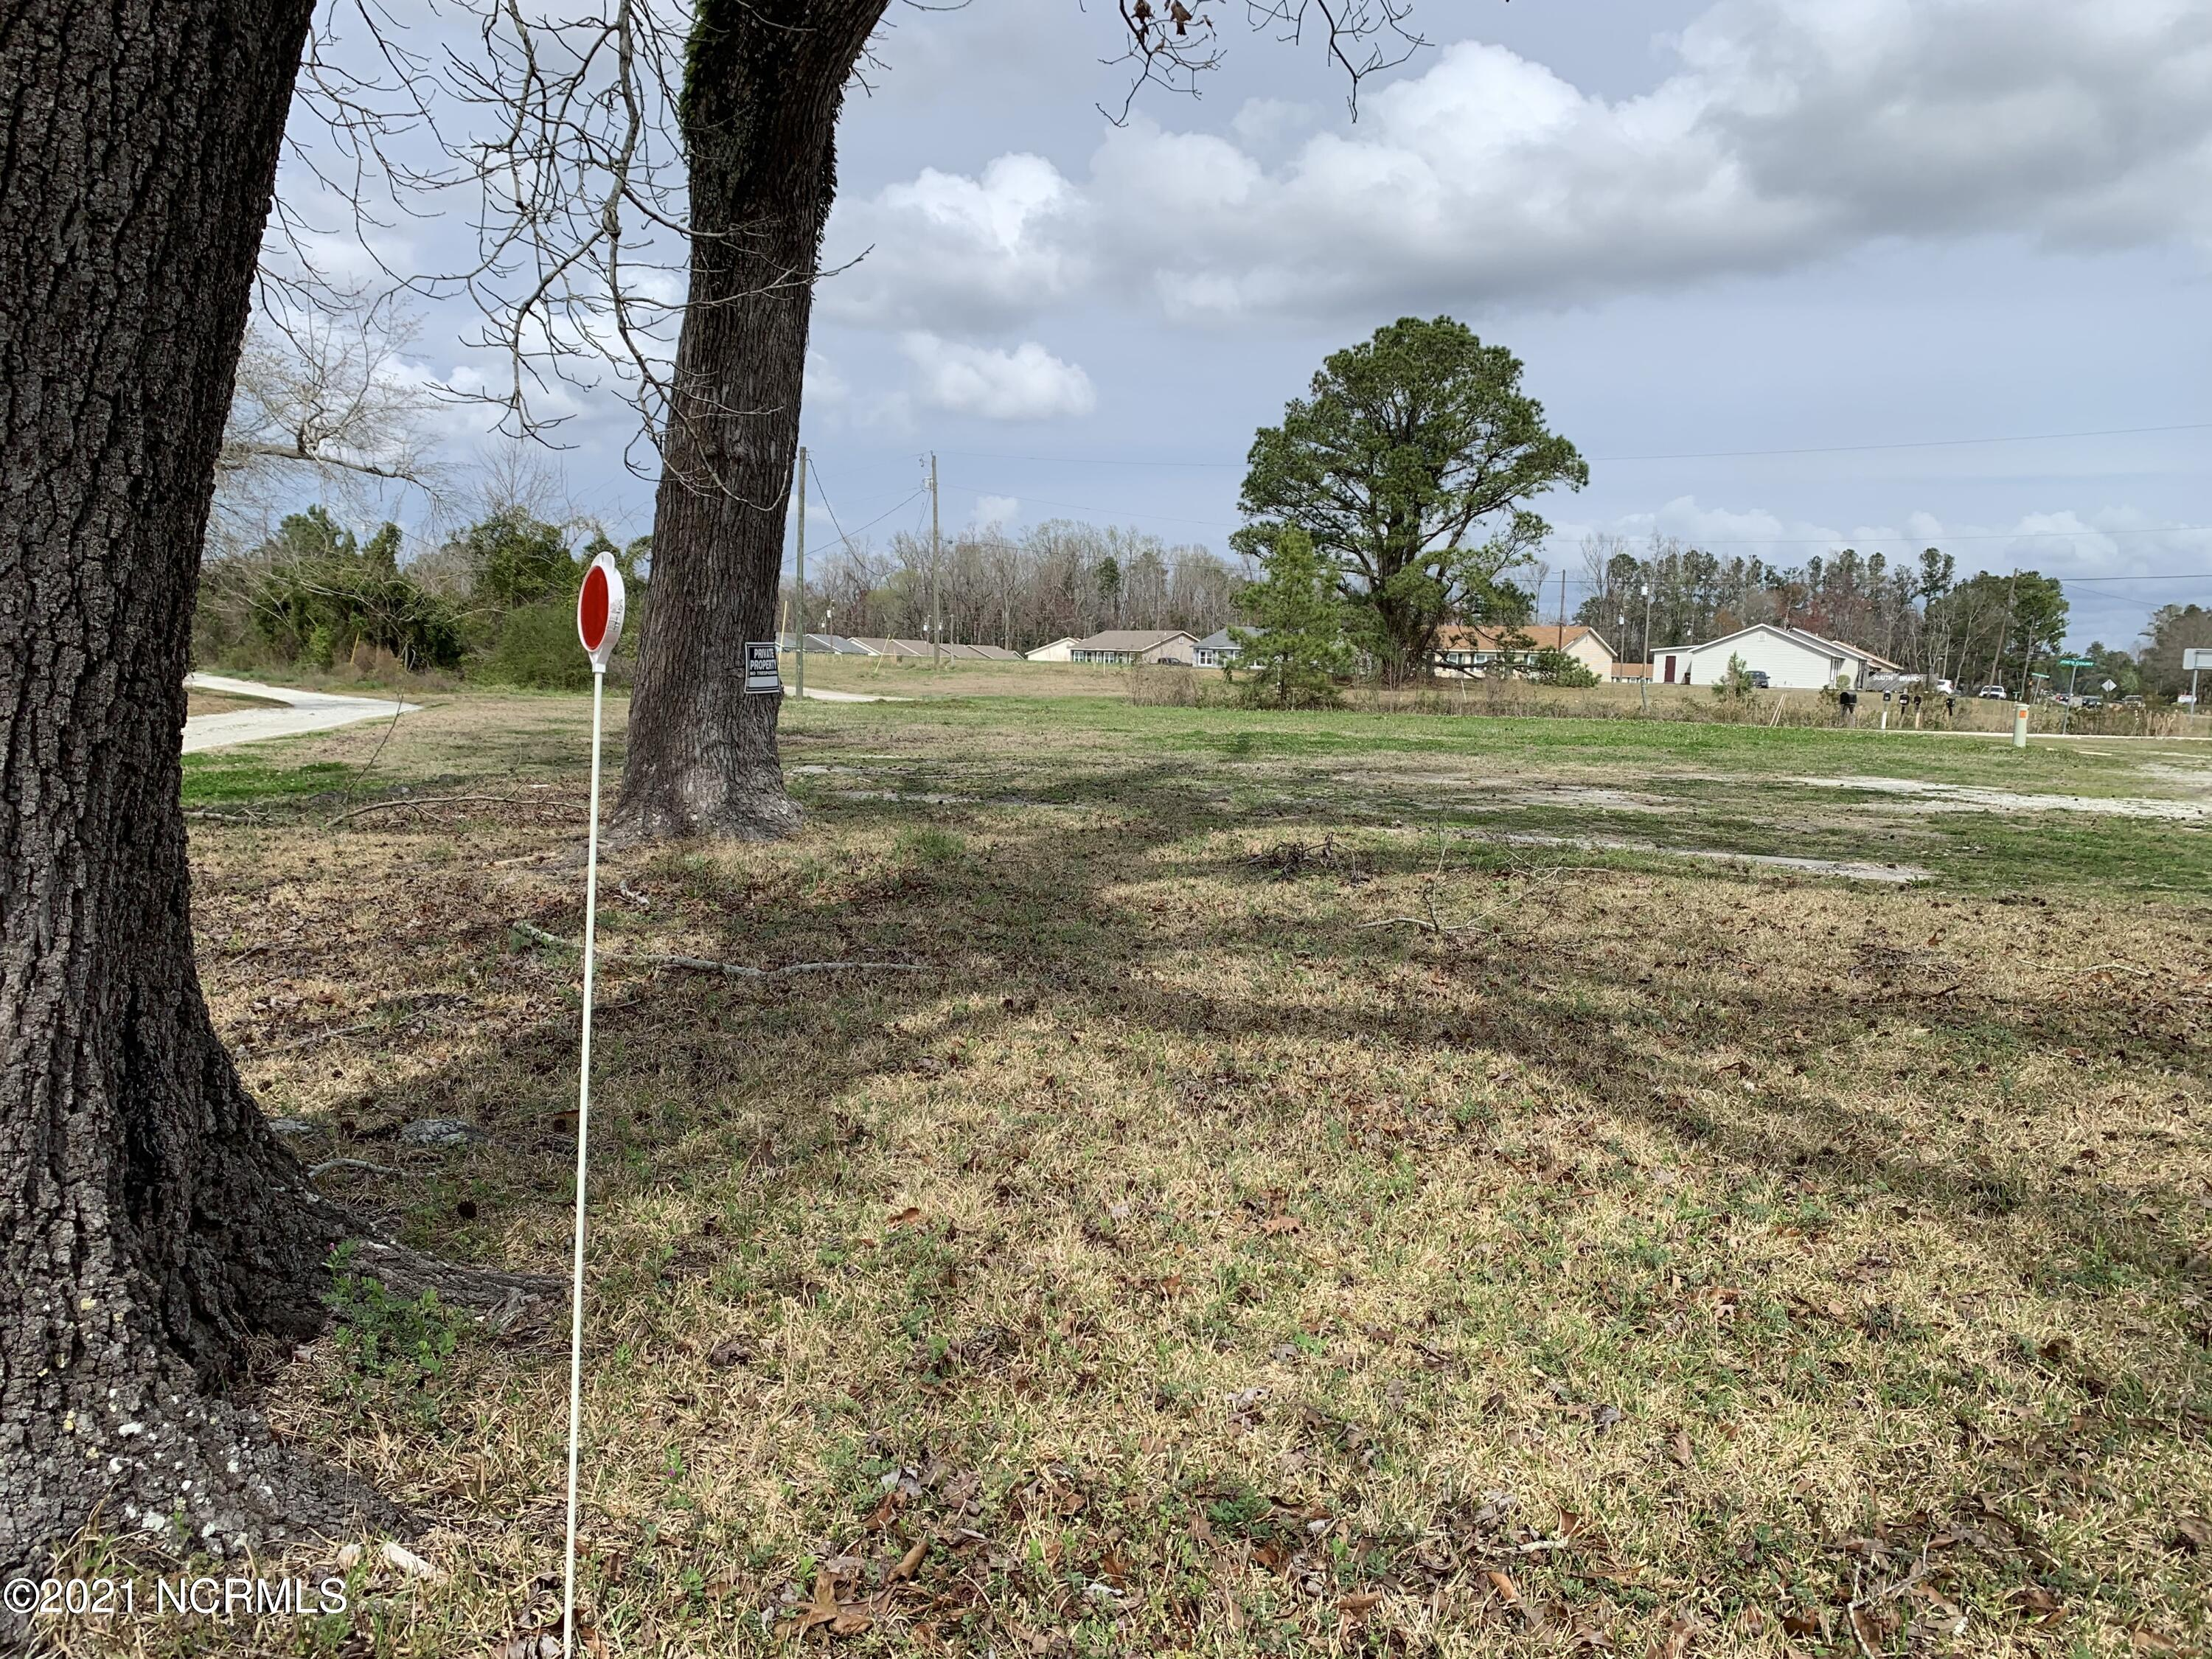 Prime Location, Many Possibilities!  Located only a few miles from the new bypass and across the street from Onslow Pines Road. The cleared lot is zoned RA and presents many possibilities for the new owner. The lot previously had 2 mobile homes on it and a small beauty shop. Septic Tanks already in place. Come check this one out before its gone!